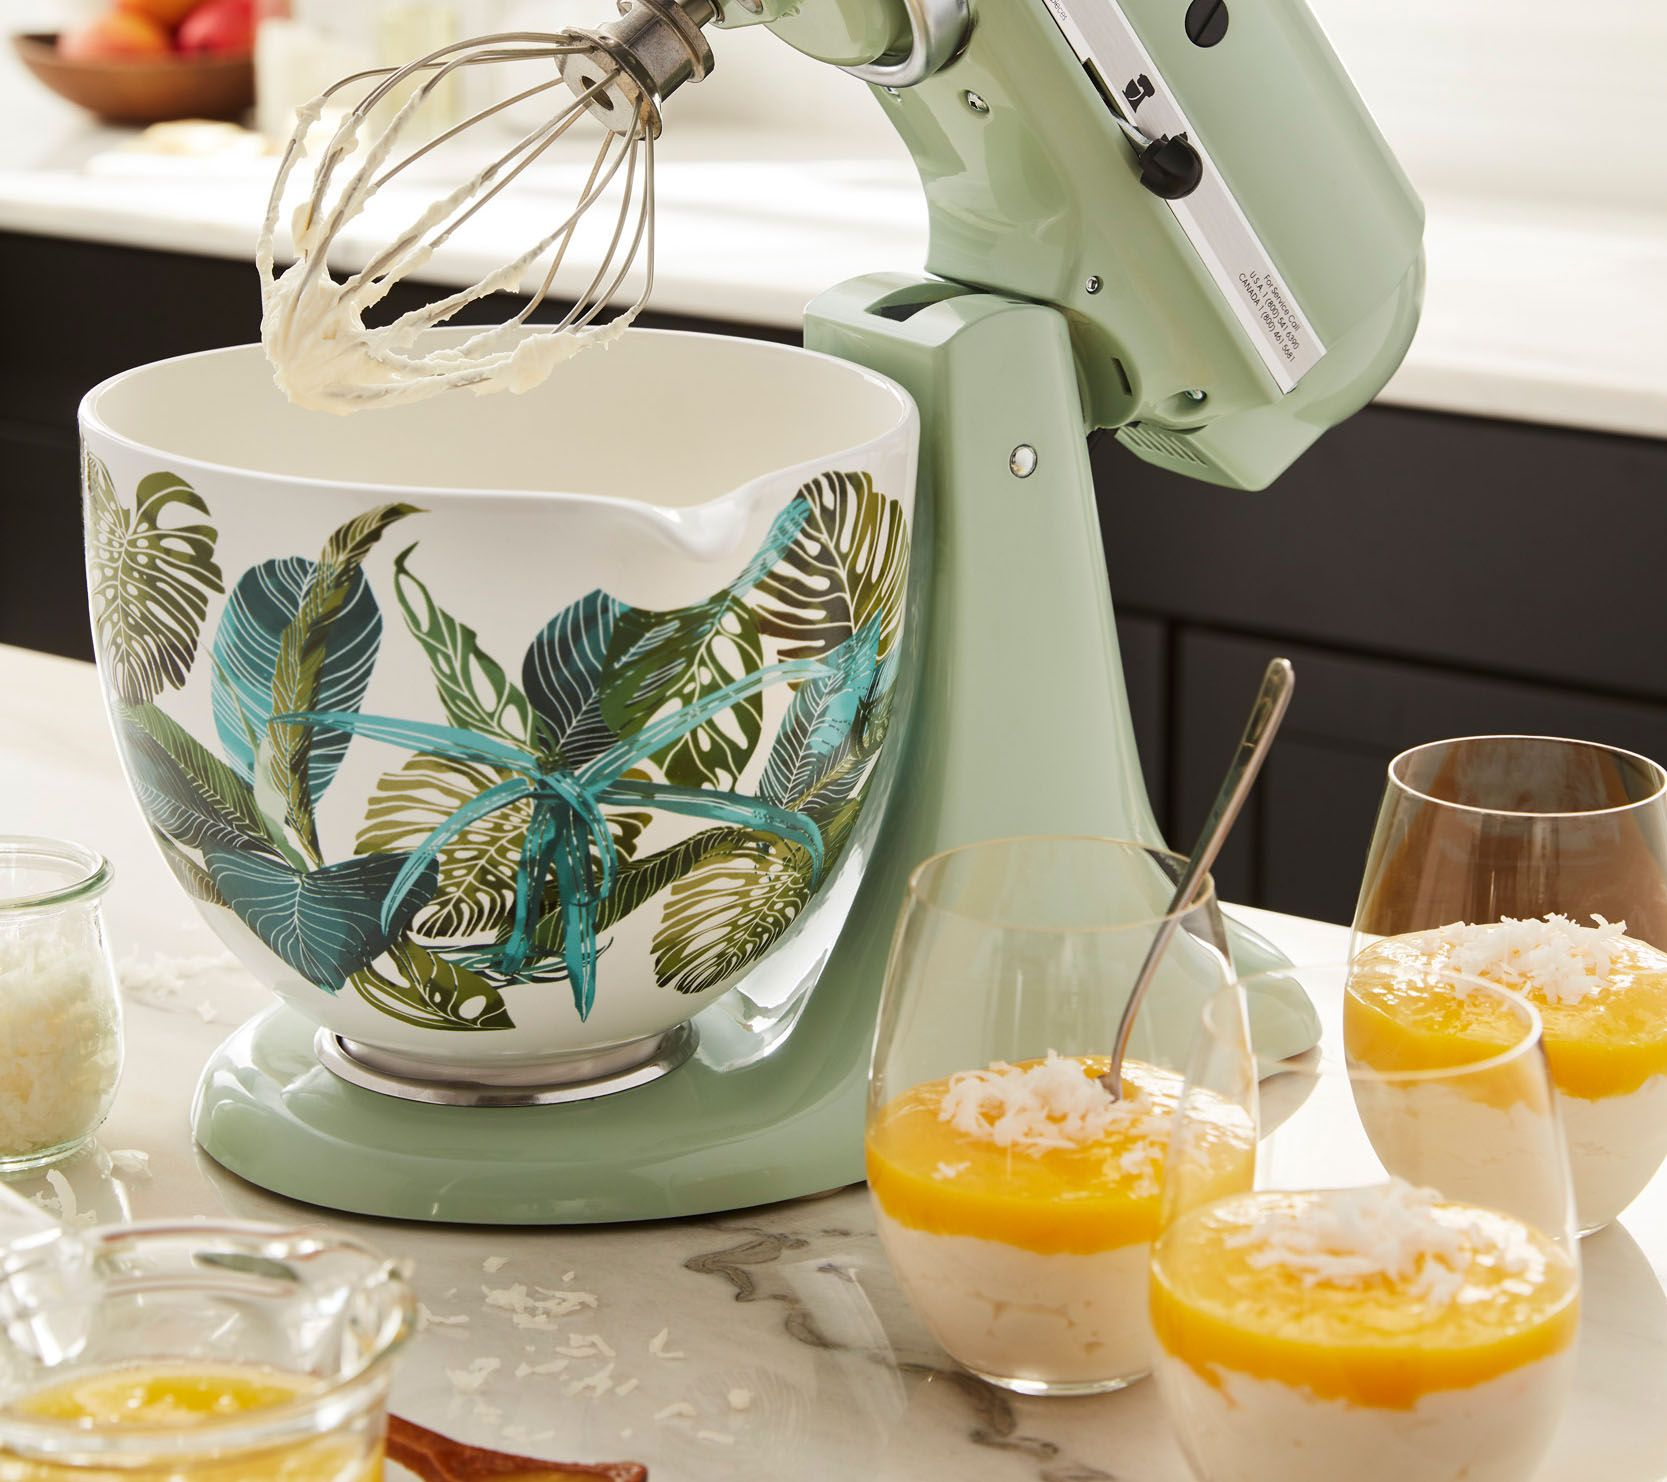 kitchen aid bowls outdoor with green egg kitchenaid 5 quart ceramic patterned bowl tropical floral page 1 qvc com